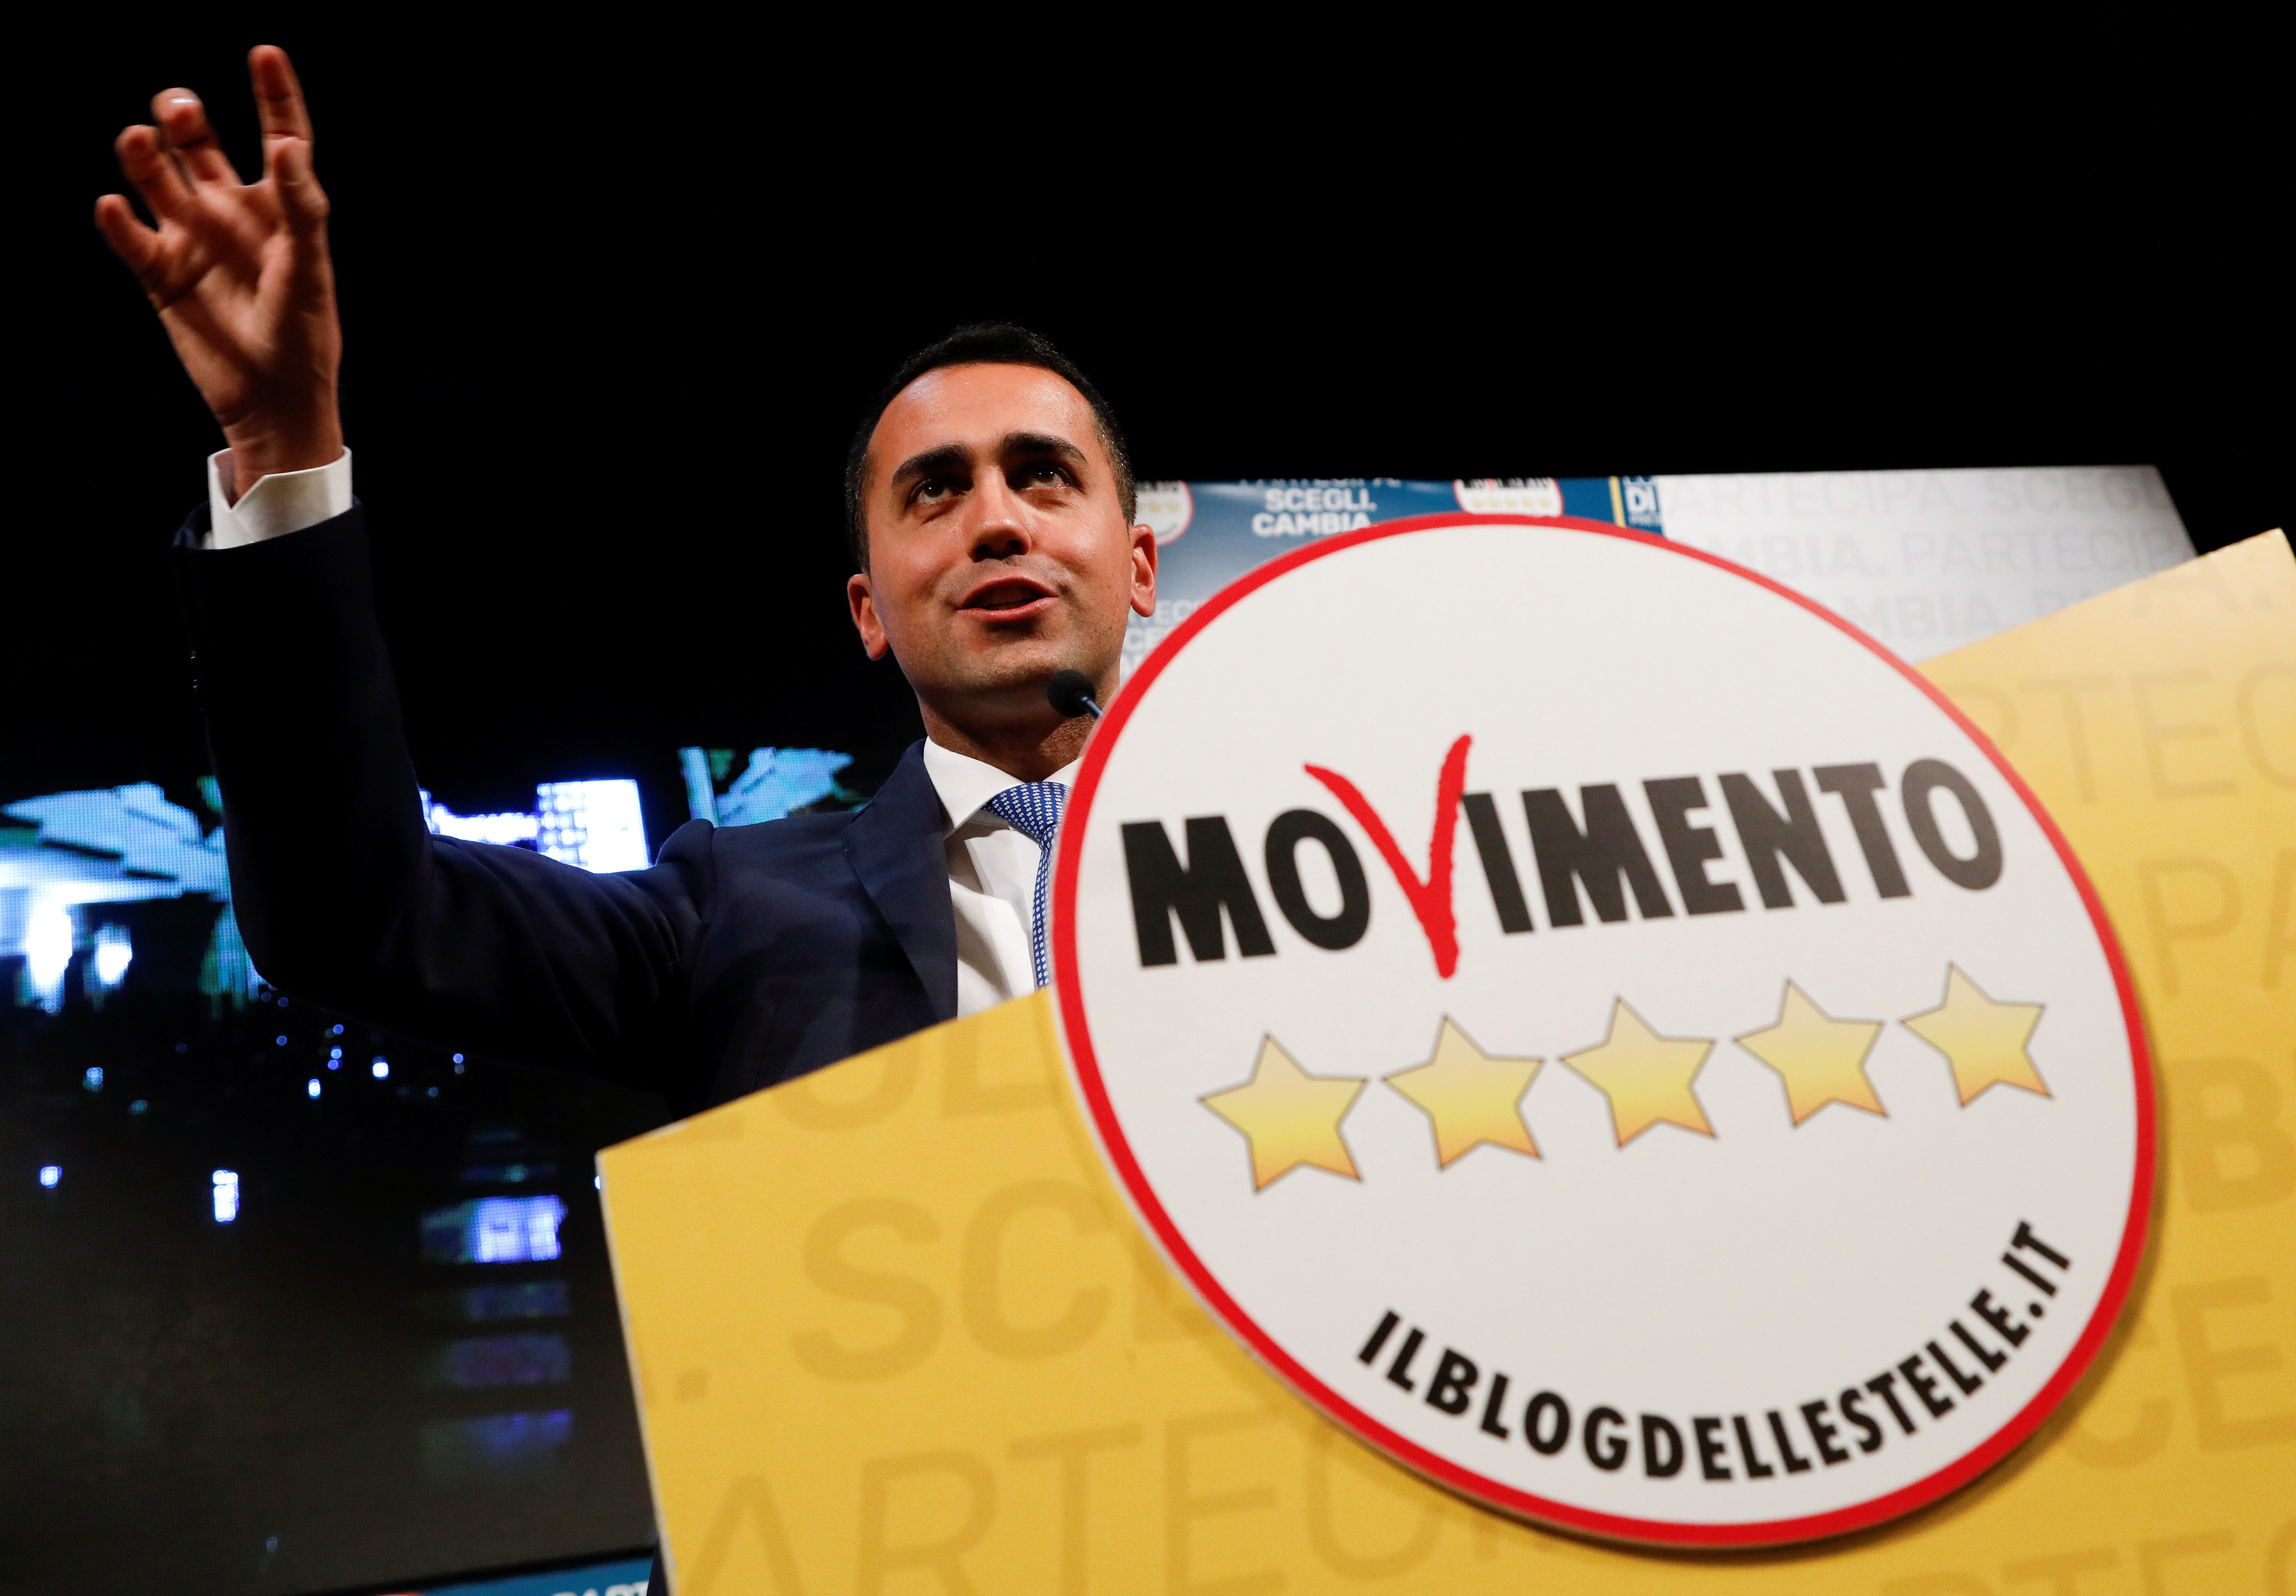 5-Star Movement leader Luigi Di Maio speaks during an electoral rally in Caserta, Italy February 23, 2018. REUTERS/Ciro De Luca - RC1551BD32F0